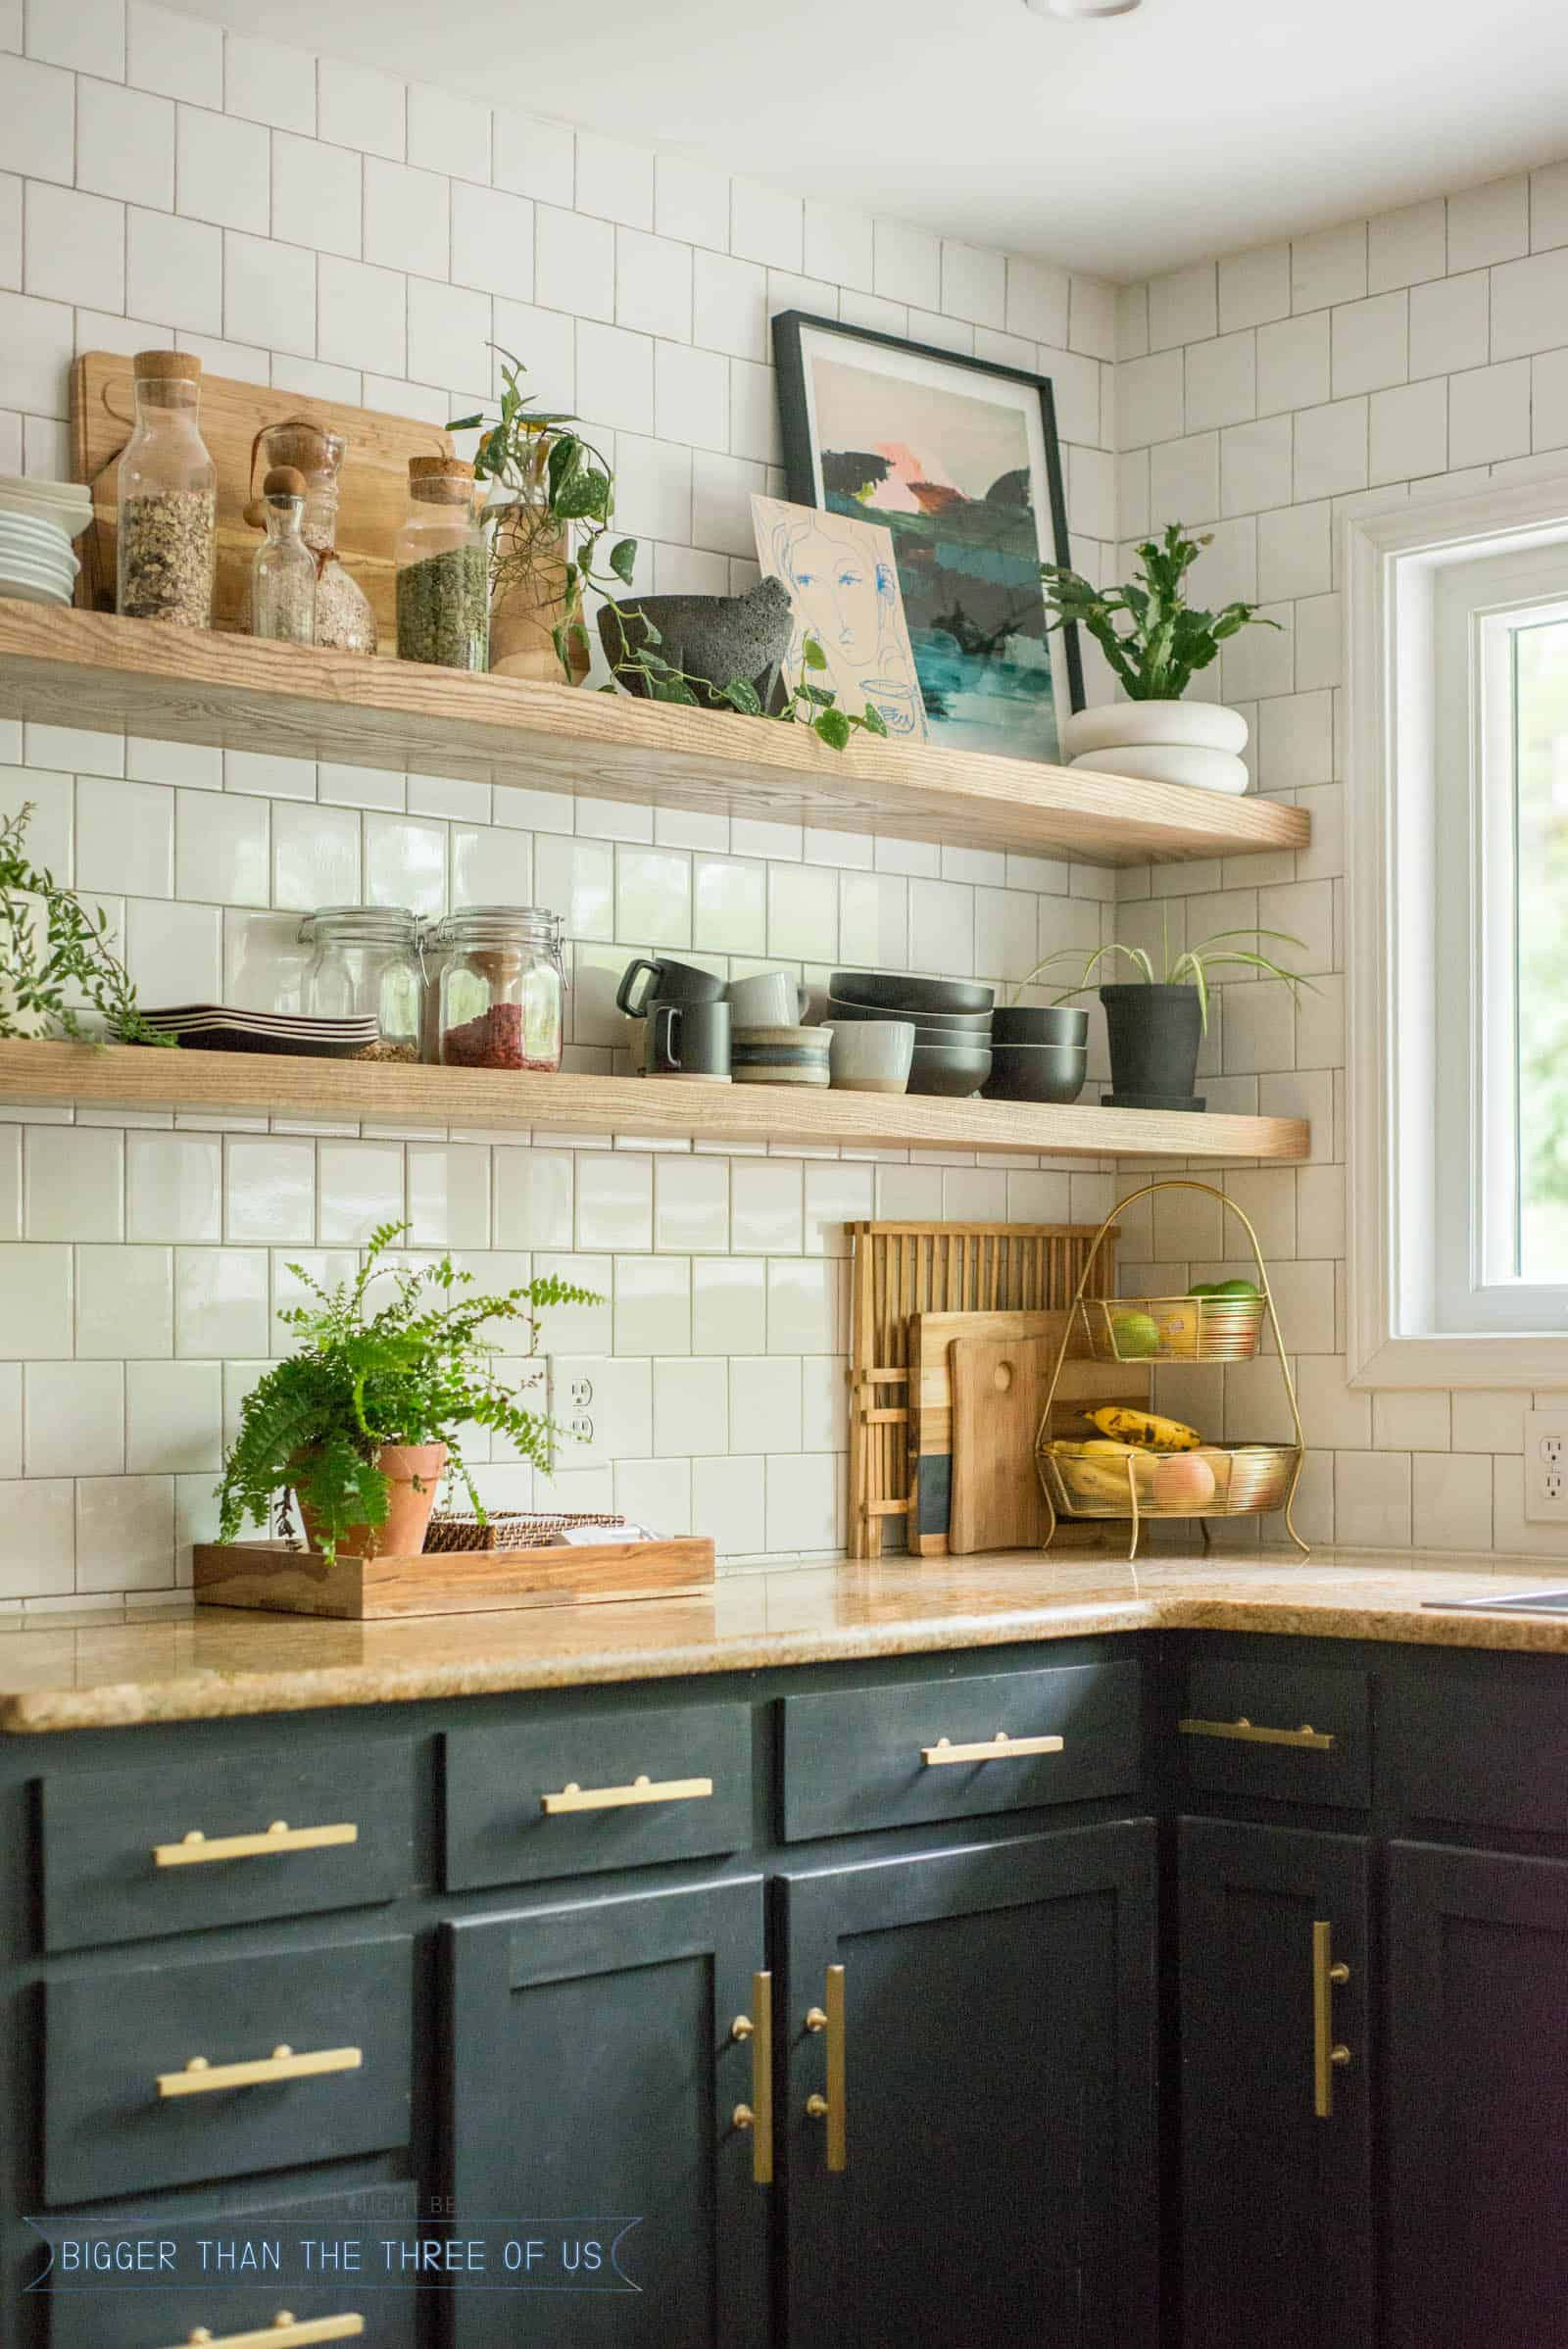 diy open shelving kitchen guide bigger than the three floating shelves that hold lot weight under cabinets box for shoes ikea alex hack coat rack with storage angled wall shelf